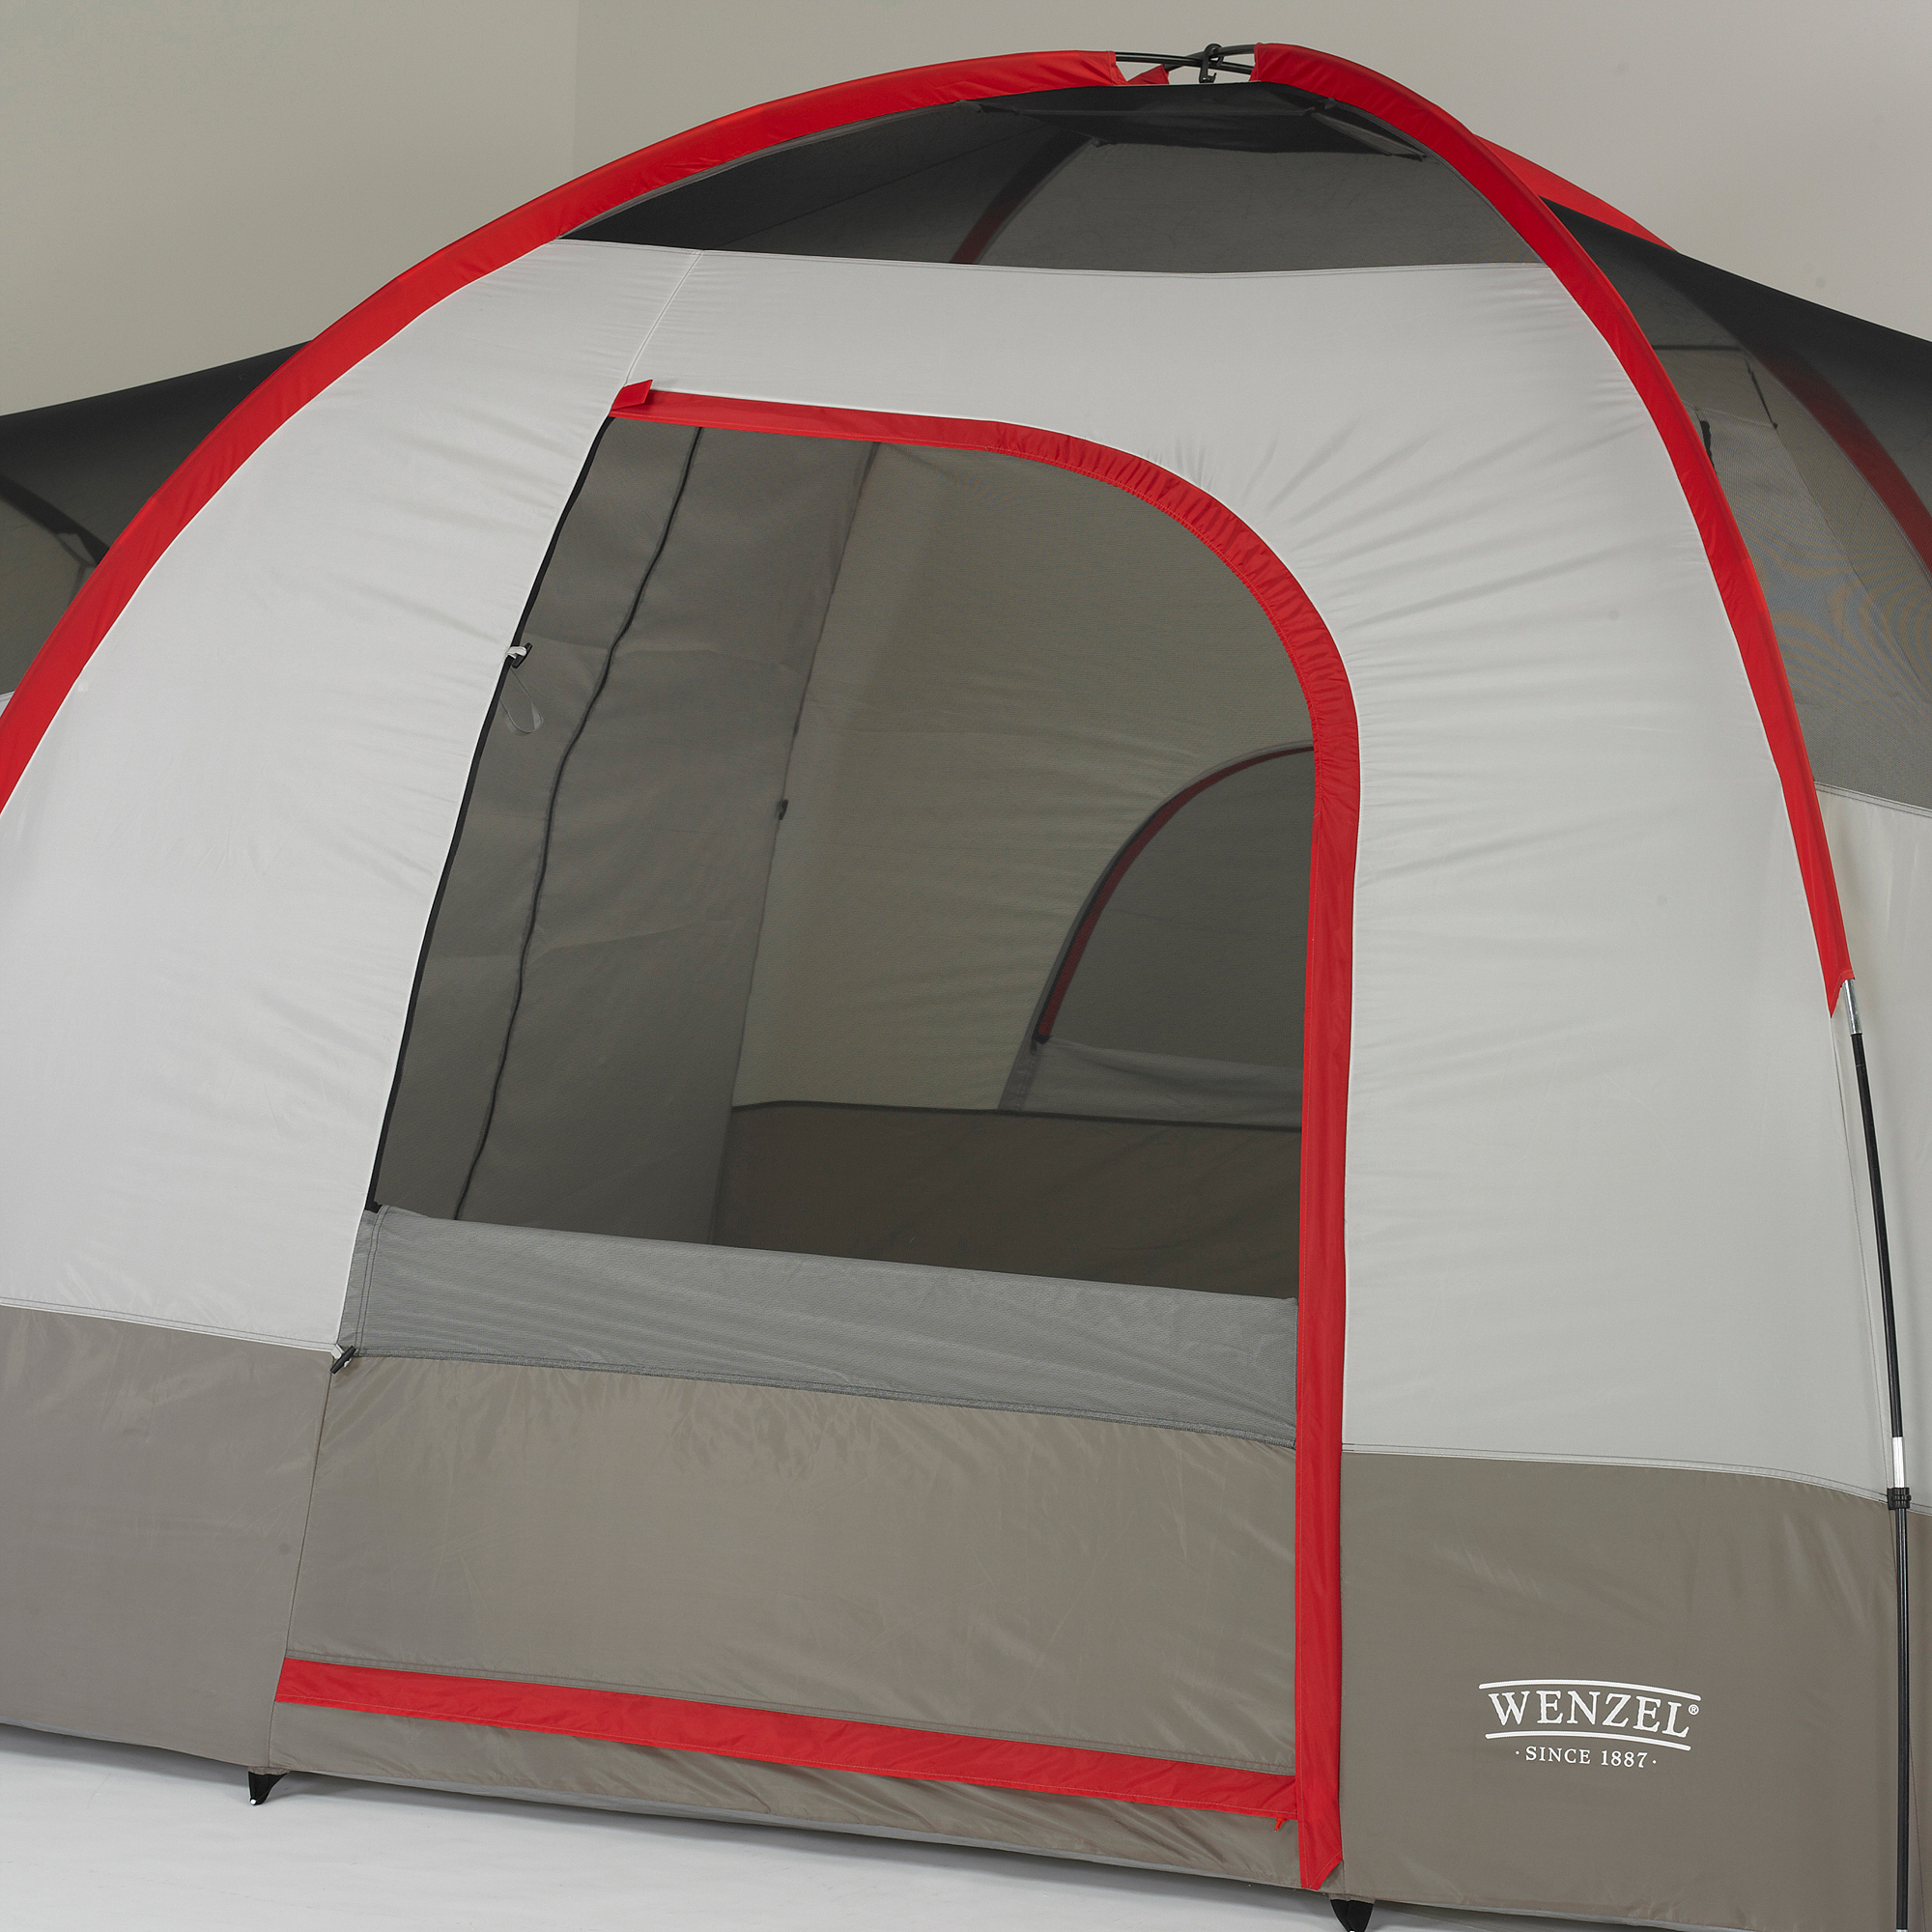 Wenzel Evergreen 11 X 9 Tent